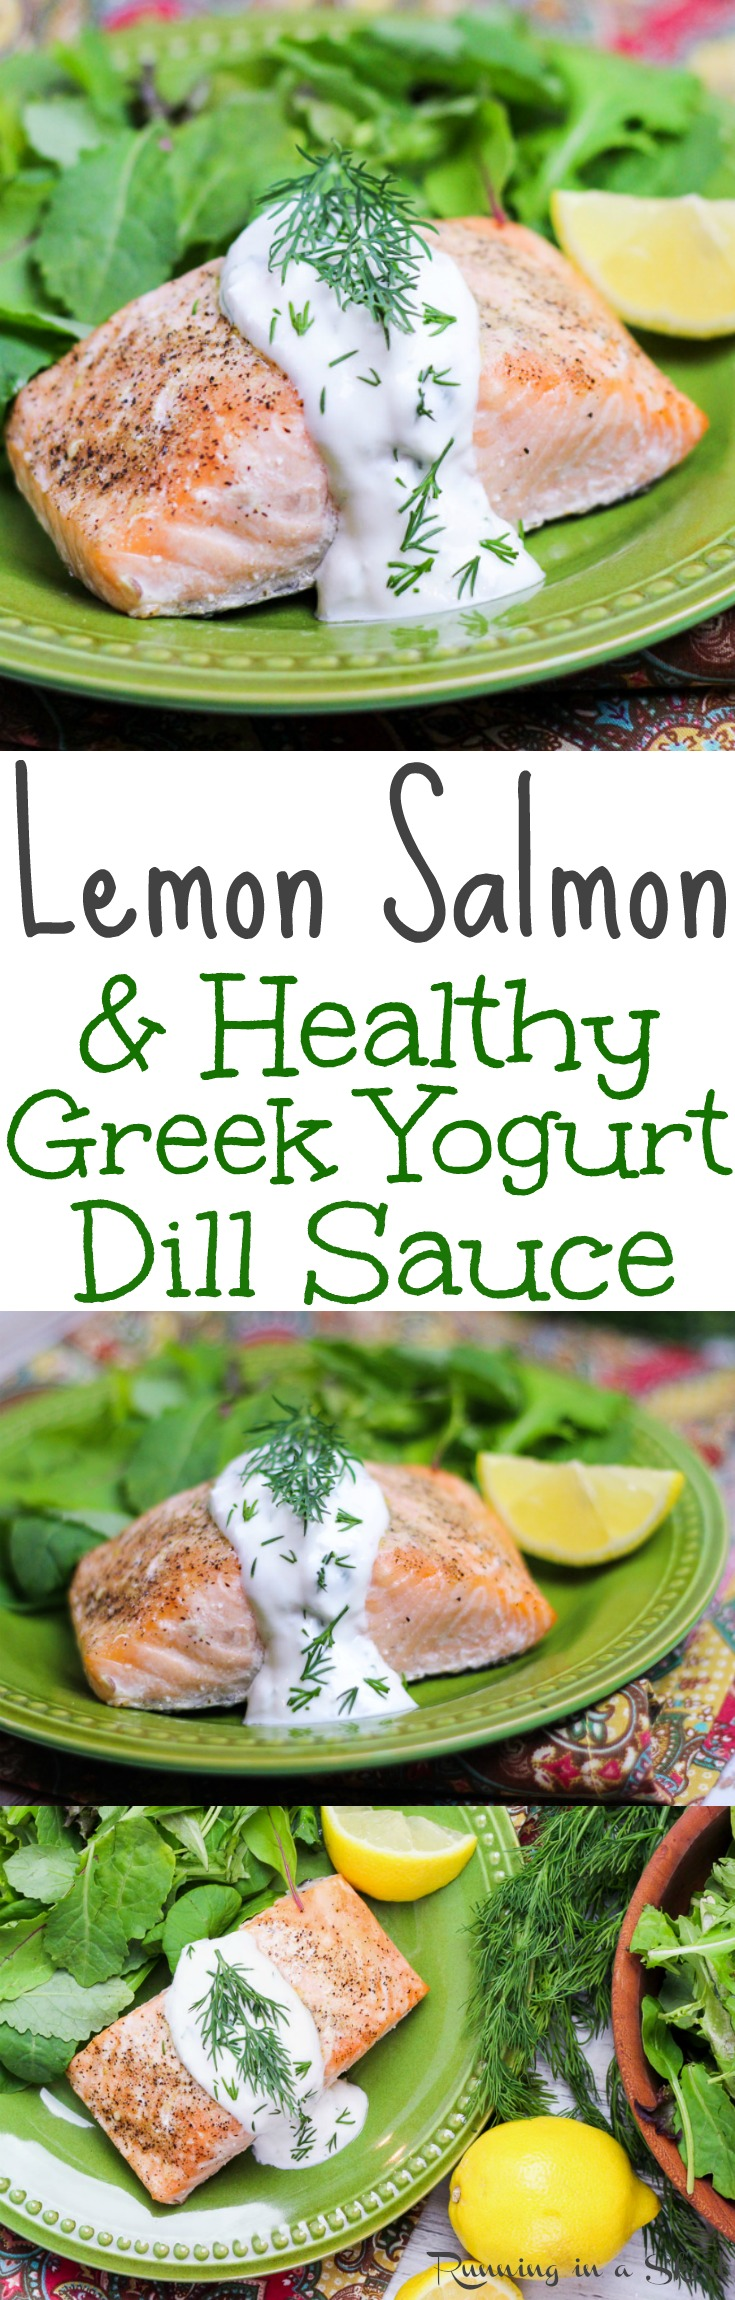 Baked Lemon Salmon with Greek Yogurt Dill Sauce recipe. This easy, clean eating and healthy salmon recipe is perfect for dinners or lunch. A quick 20 minute pescatarian meal. Gluten free, low carb and healthy! / Running in a Skirt via @juliewunder